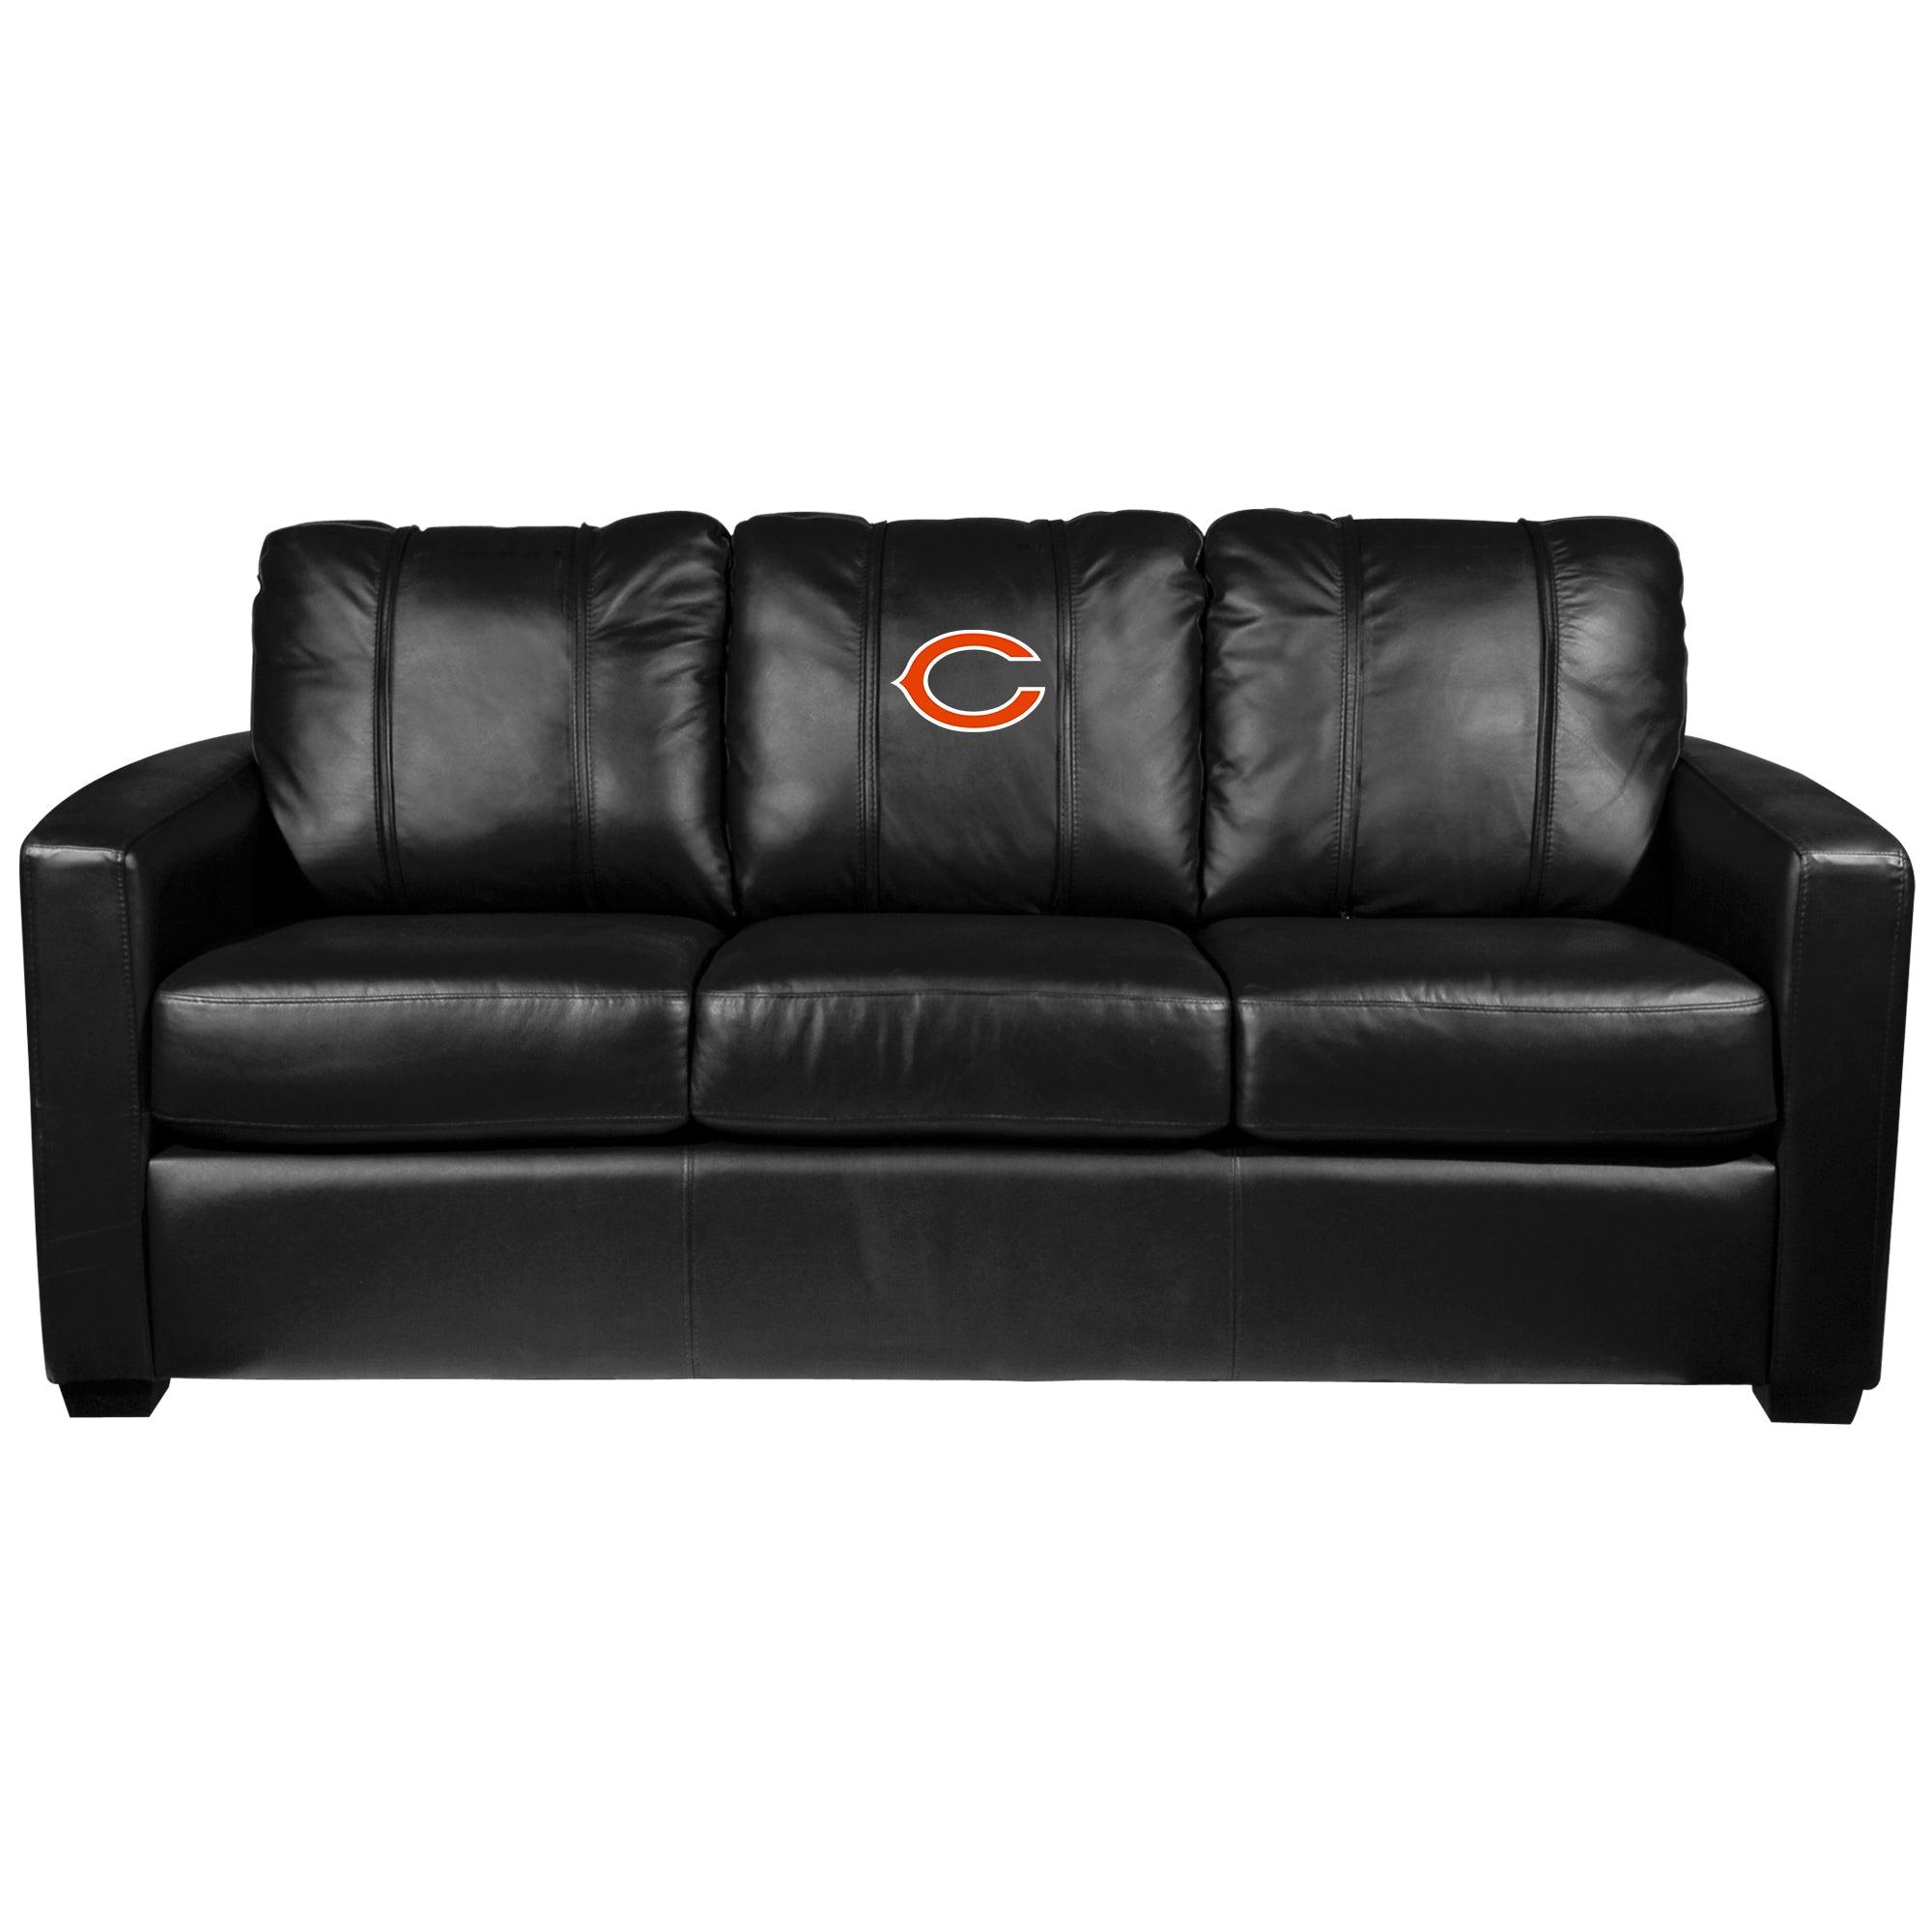 Silver Sofa with  Chicago Bears Primary Logo